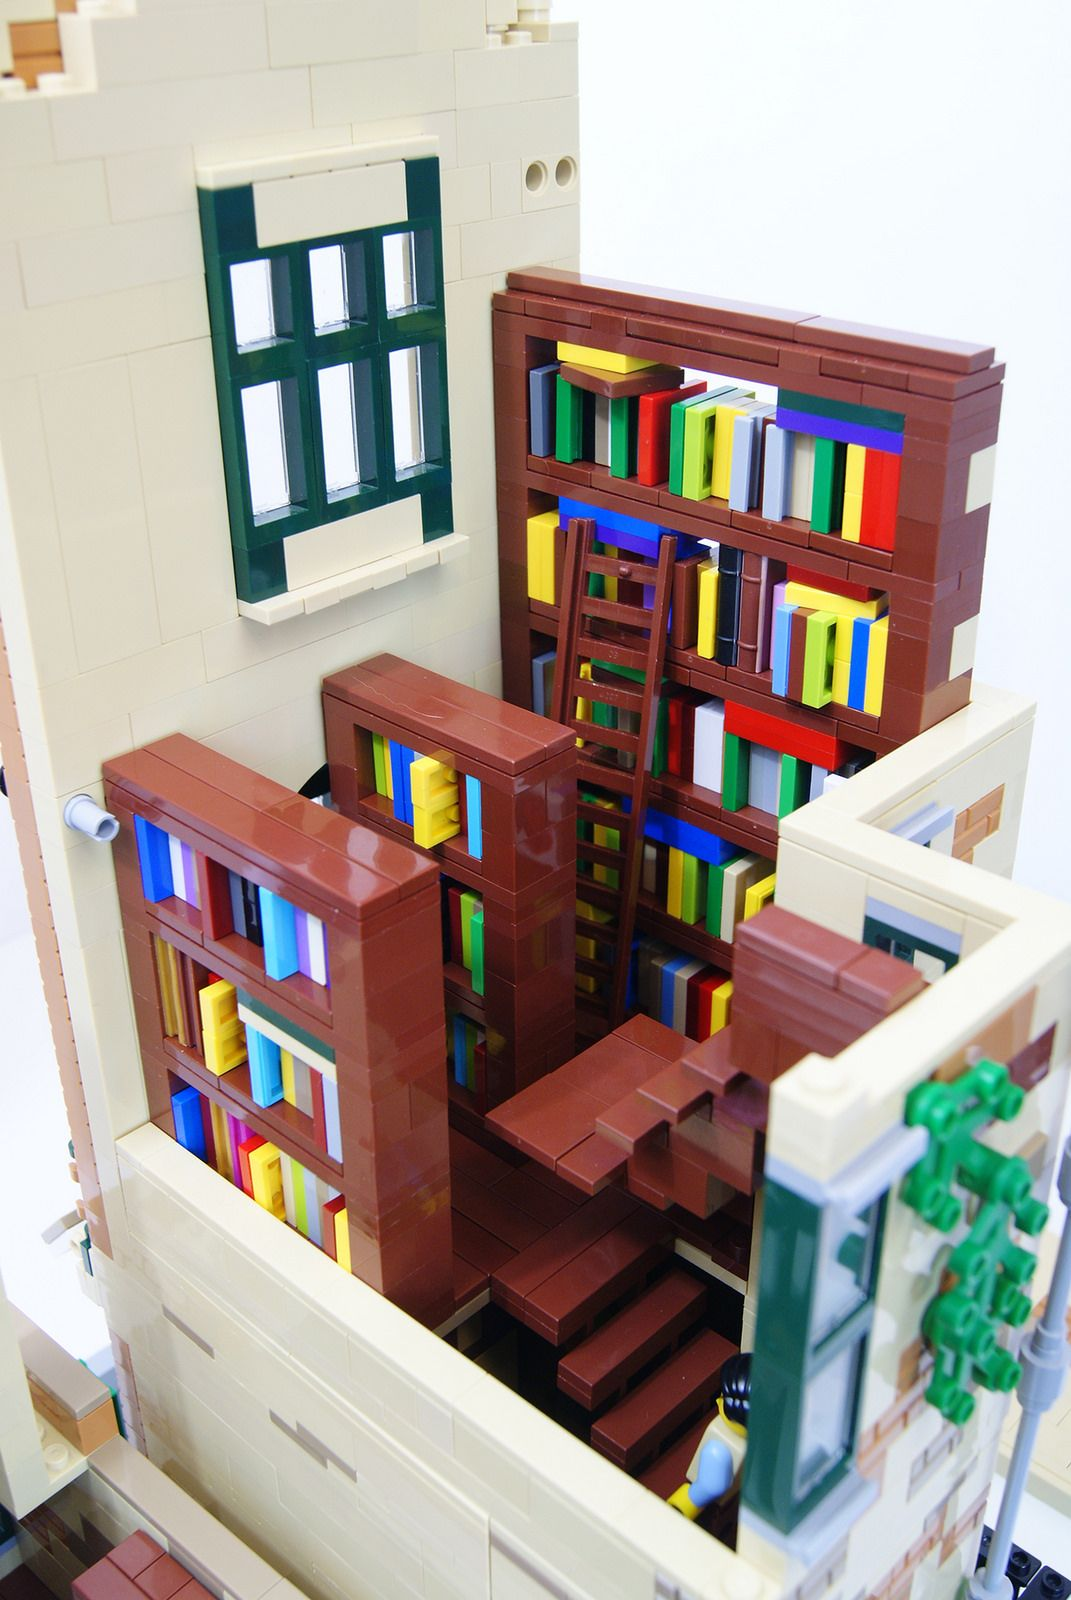 Lego Used Book Store 6 Lego Books Lego Room Lego Projects